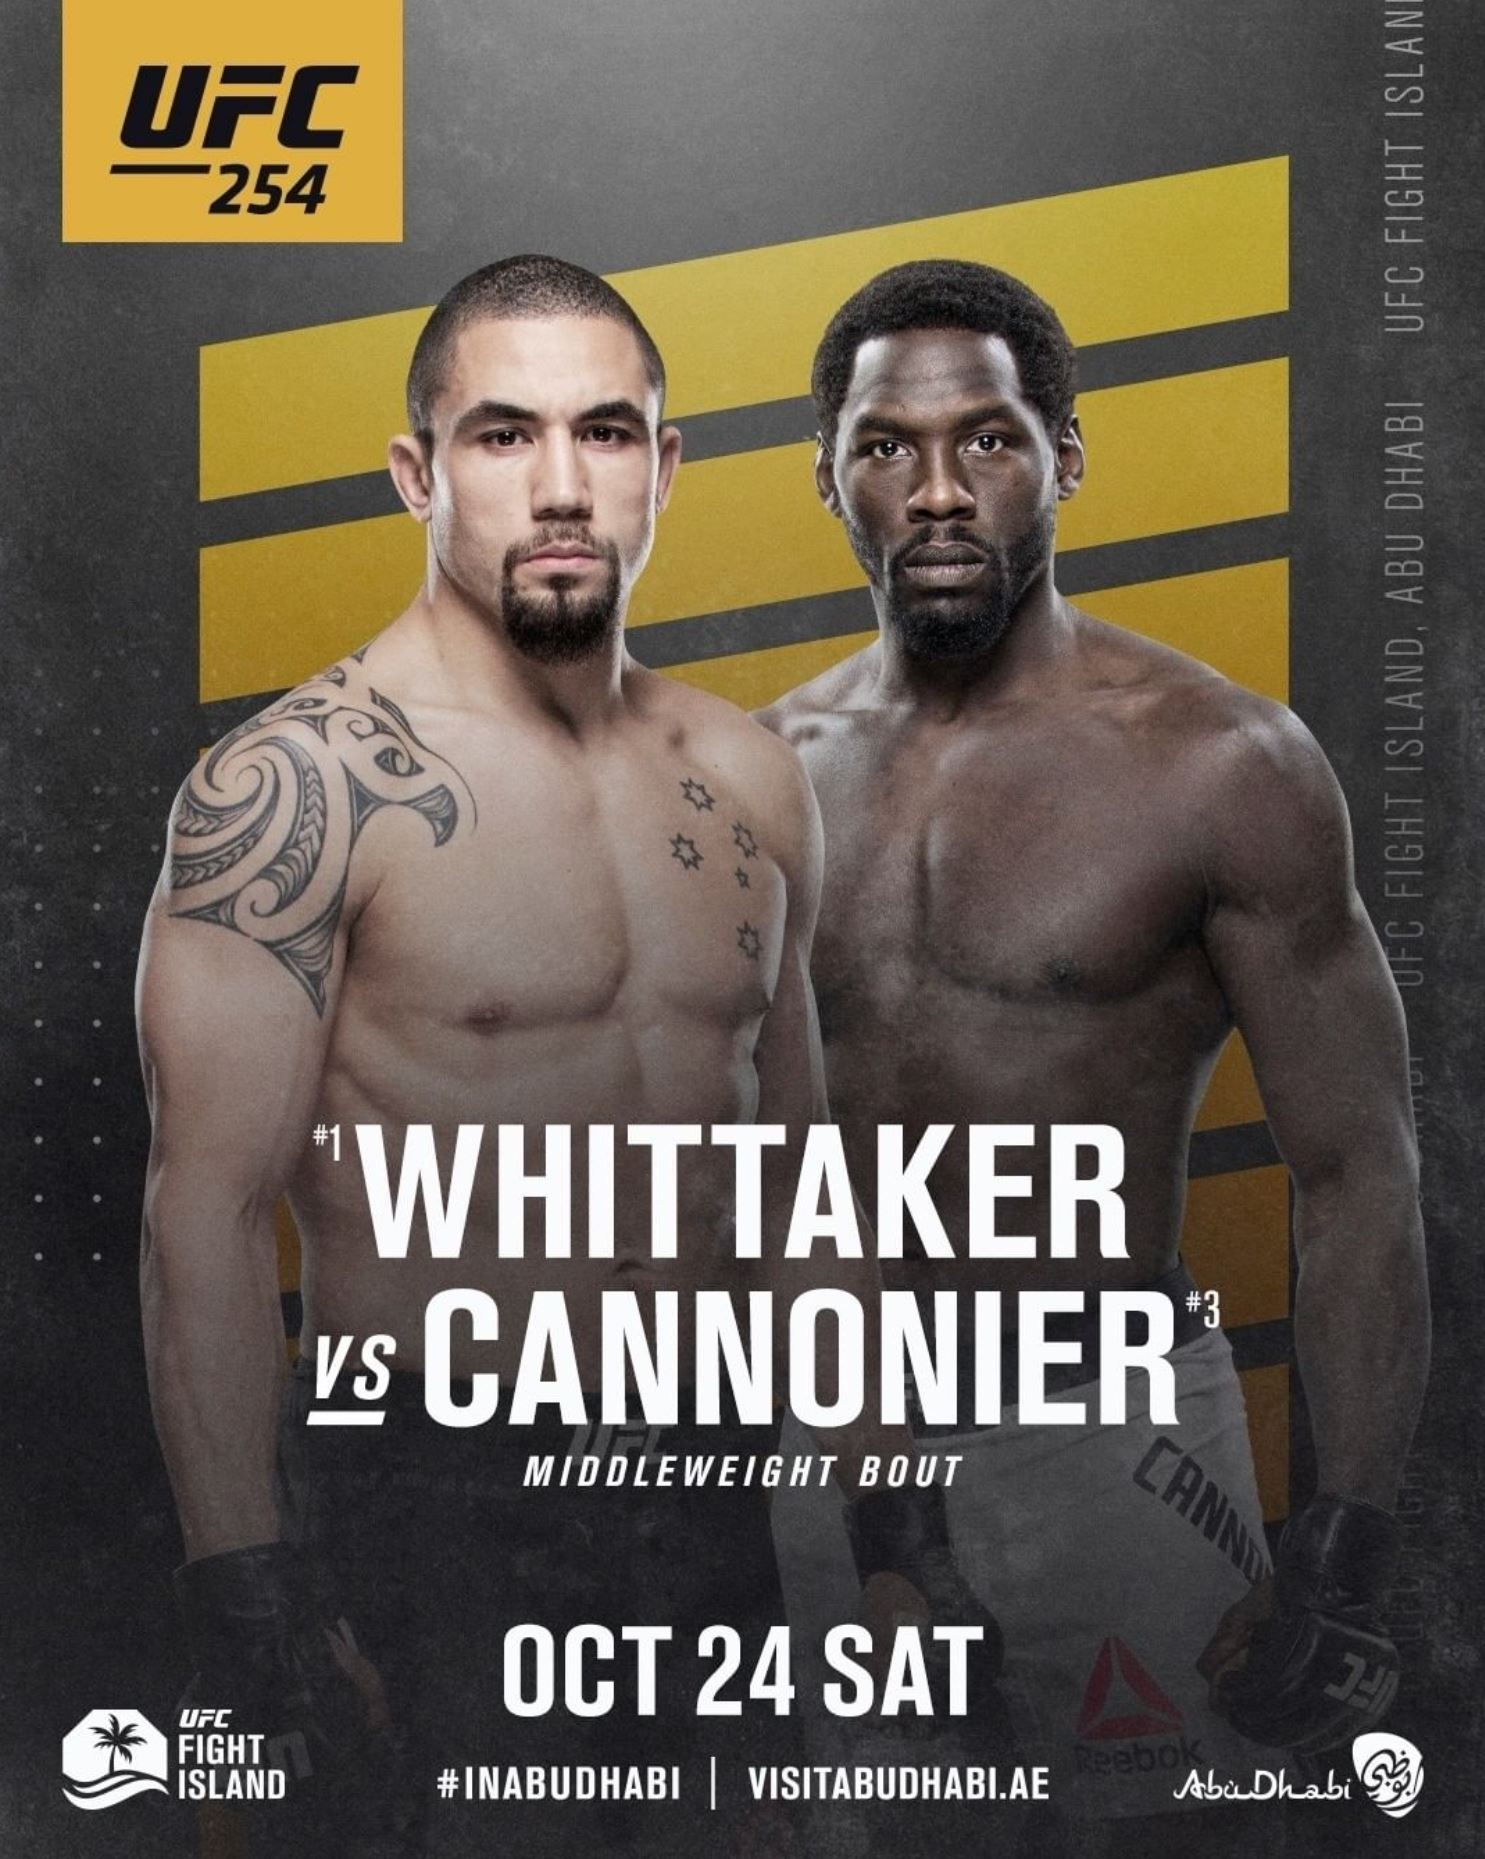 Robert Whittaker vs. Jared Cannonier fight preview